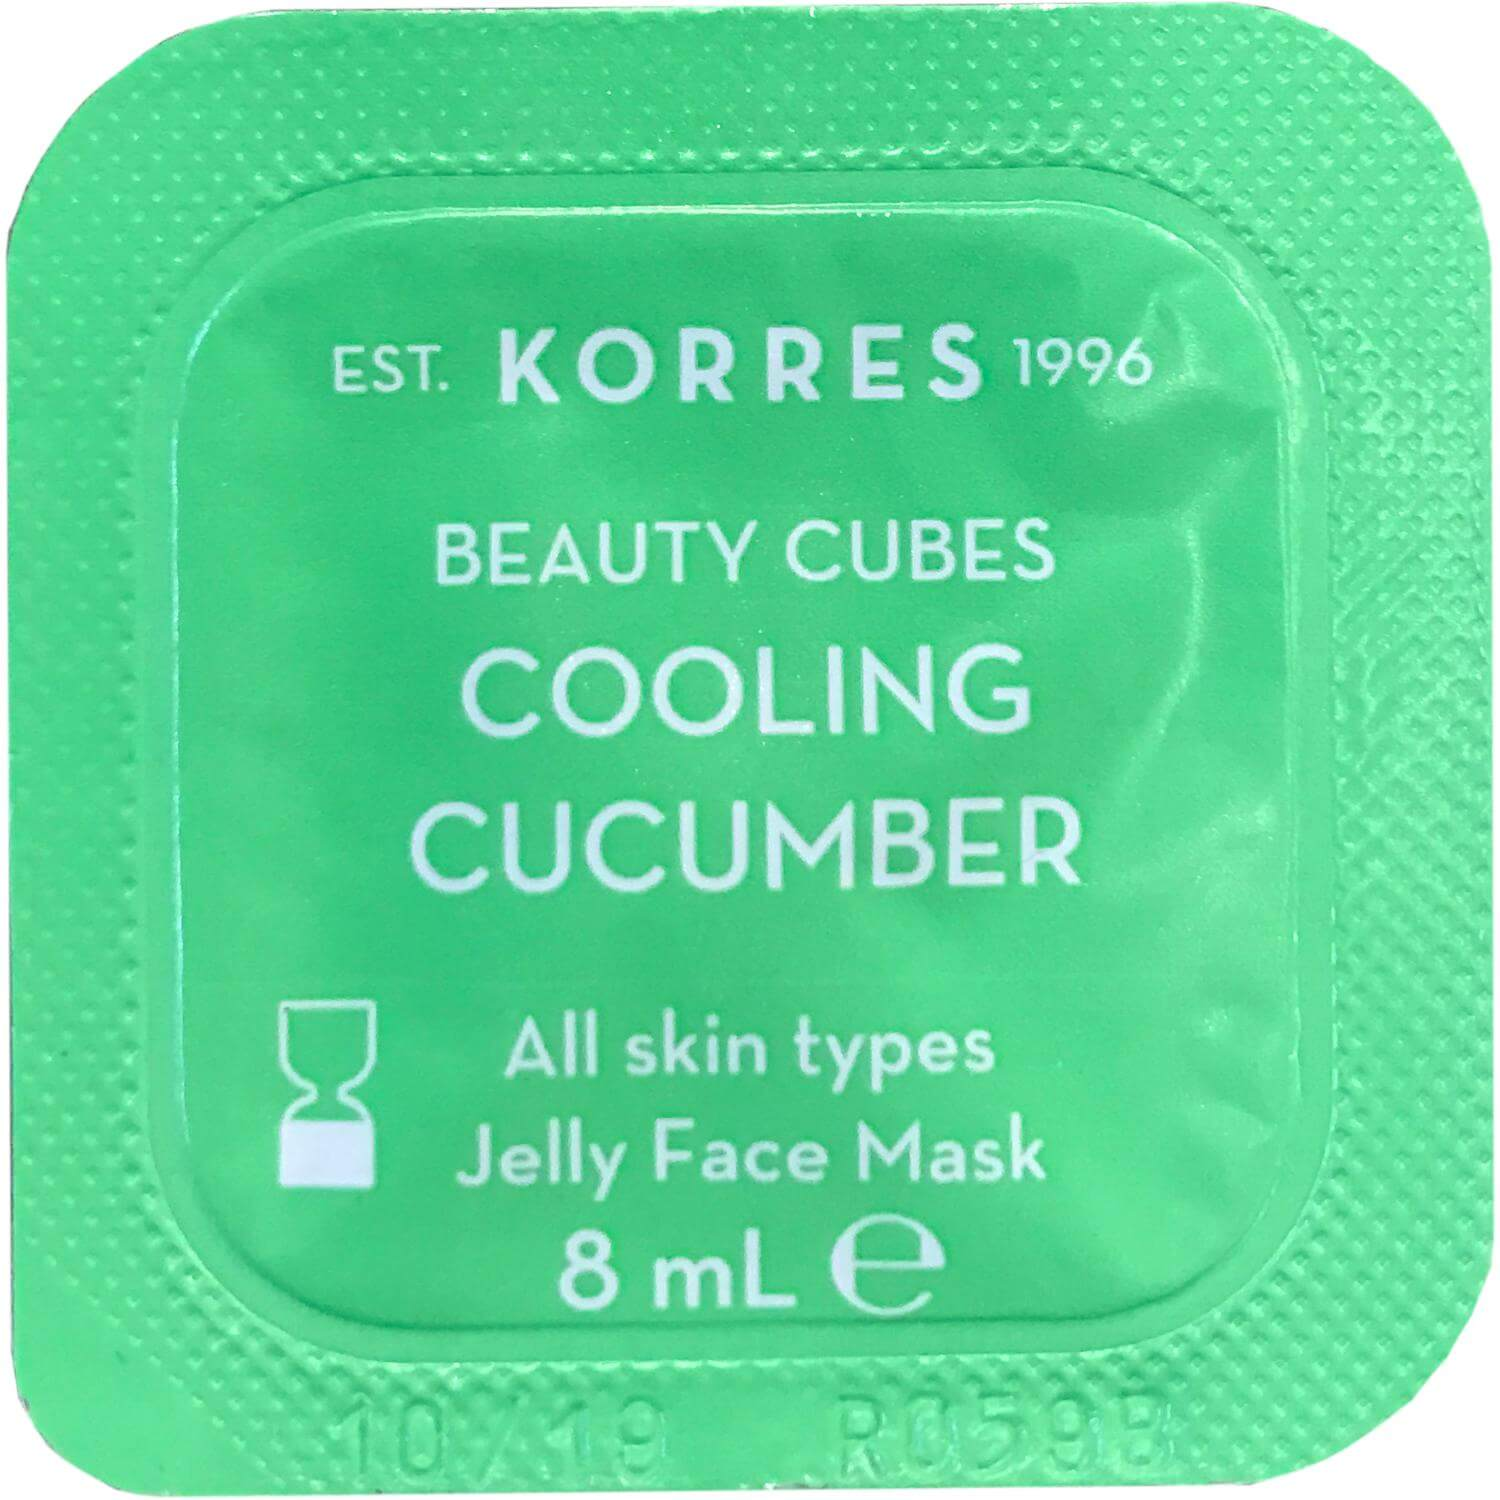 Korres Beauty Cubes Cooling Cucumber Jelly Face Mask Δροσιστική & Ενυδατική Μάσκα με Αγγούρι 8ml